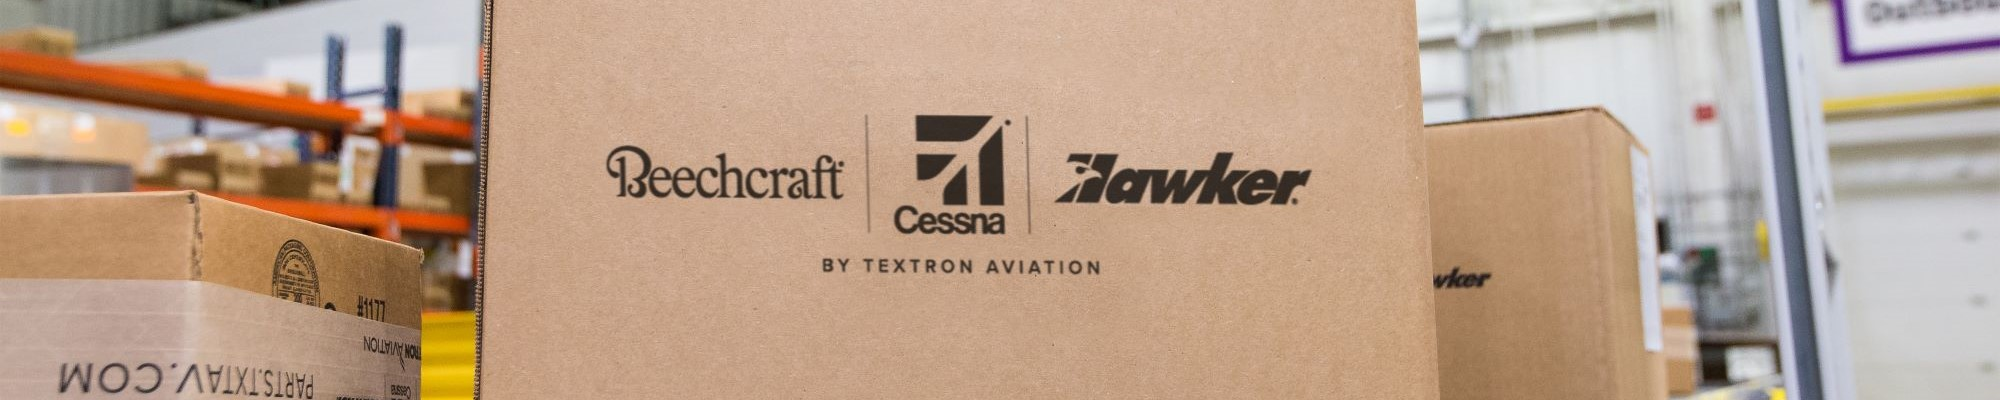 Cessna, Beechcraft and Hawker shipping box on conveyor belt. Shipping status now available in your Textron Aviation account.